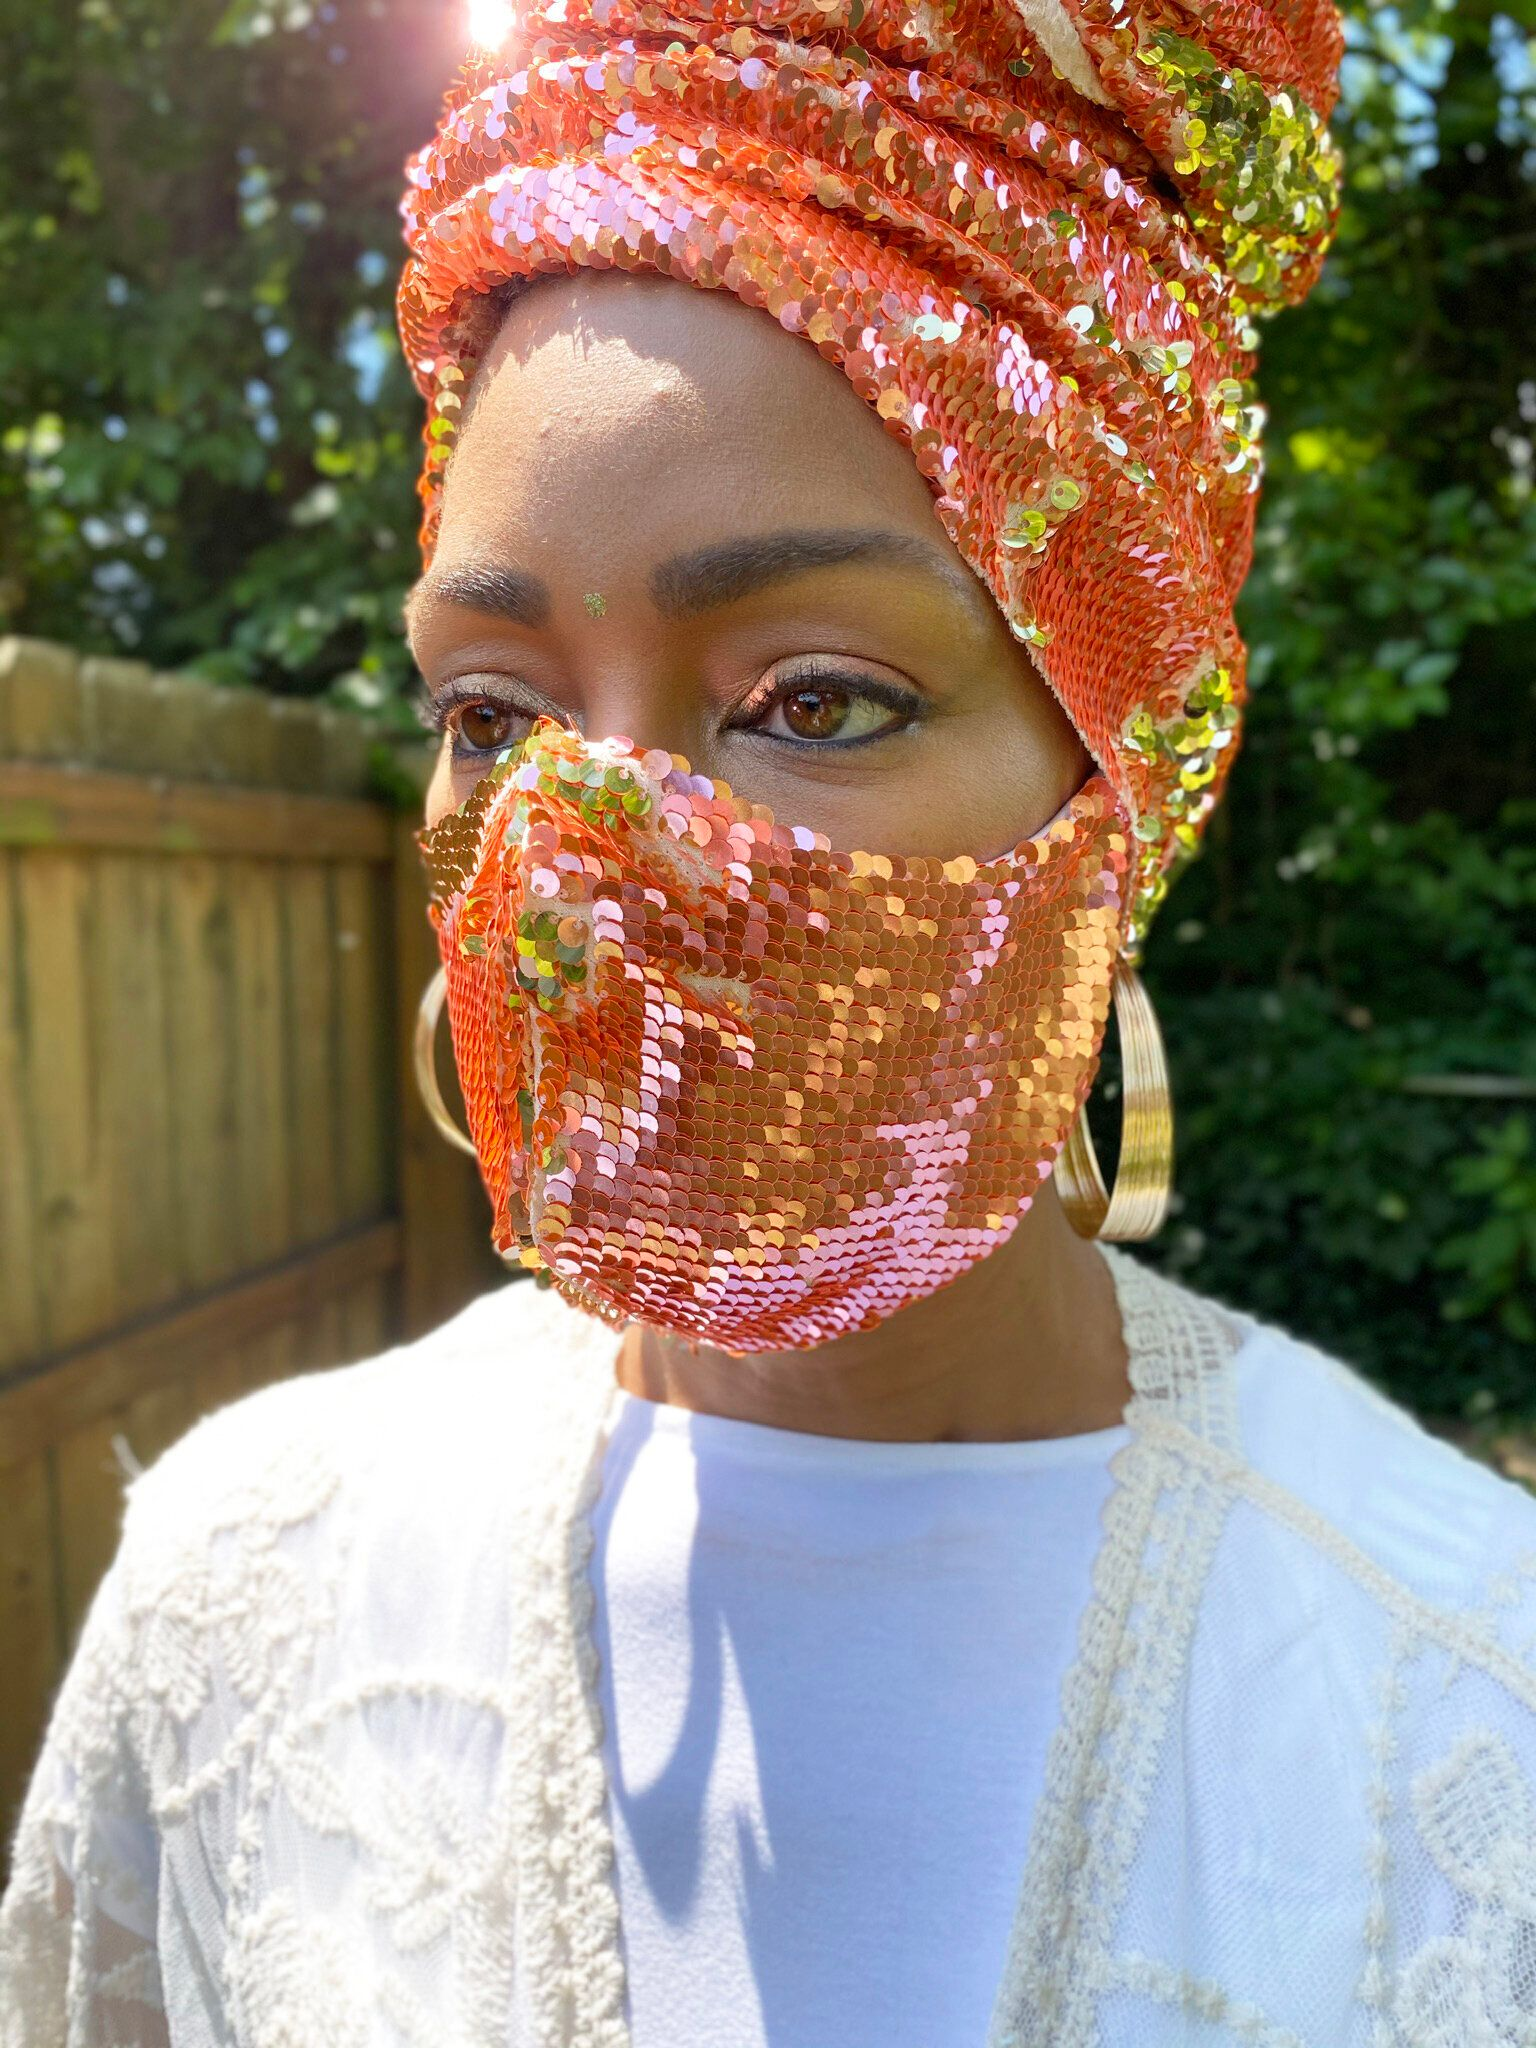 More Coronavirus Face Masks From Black-Owned Businesses